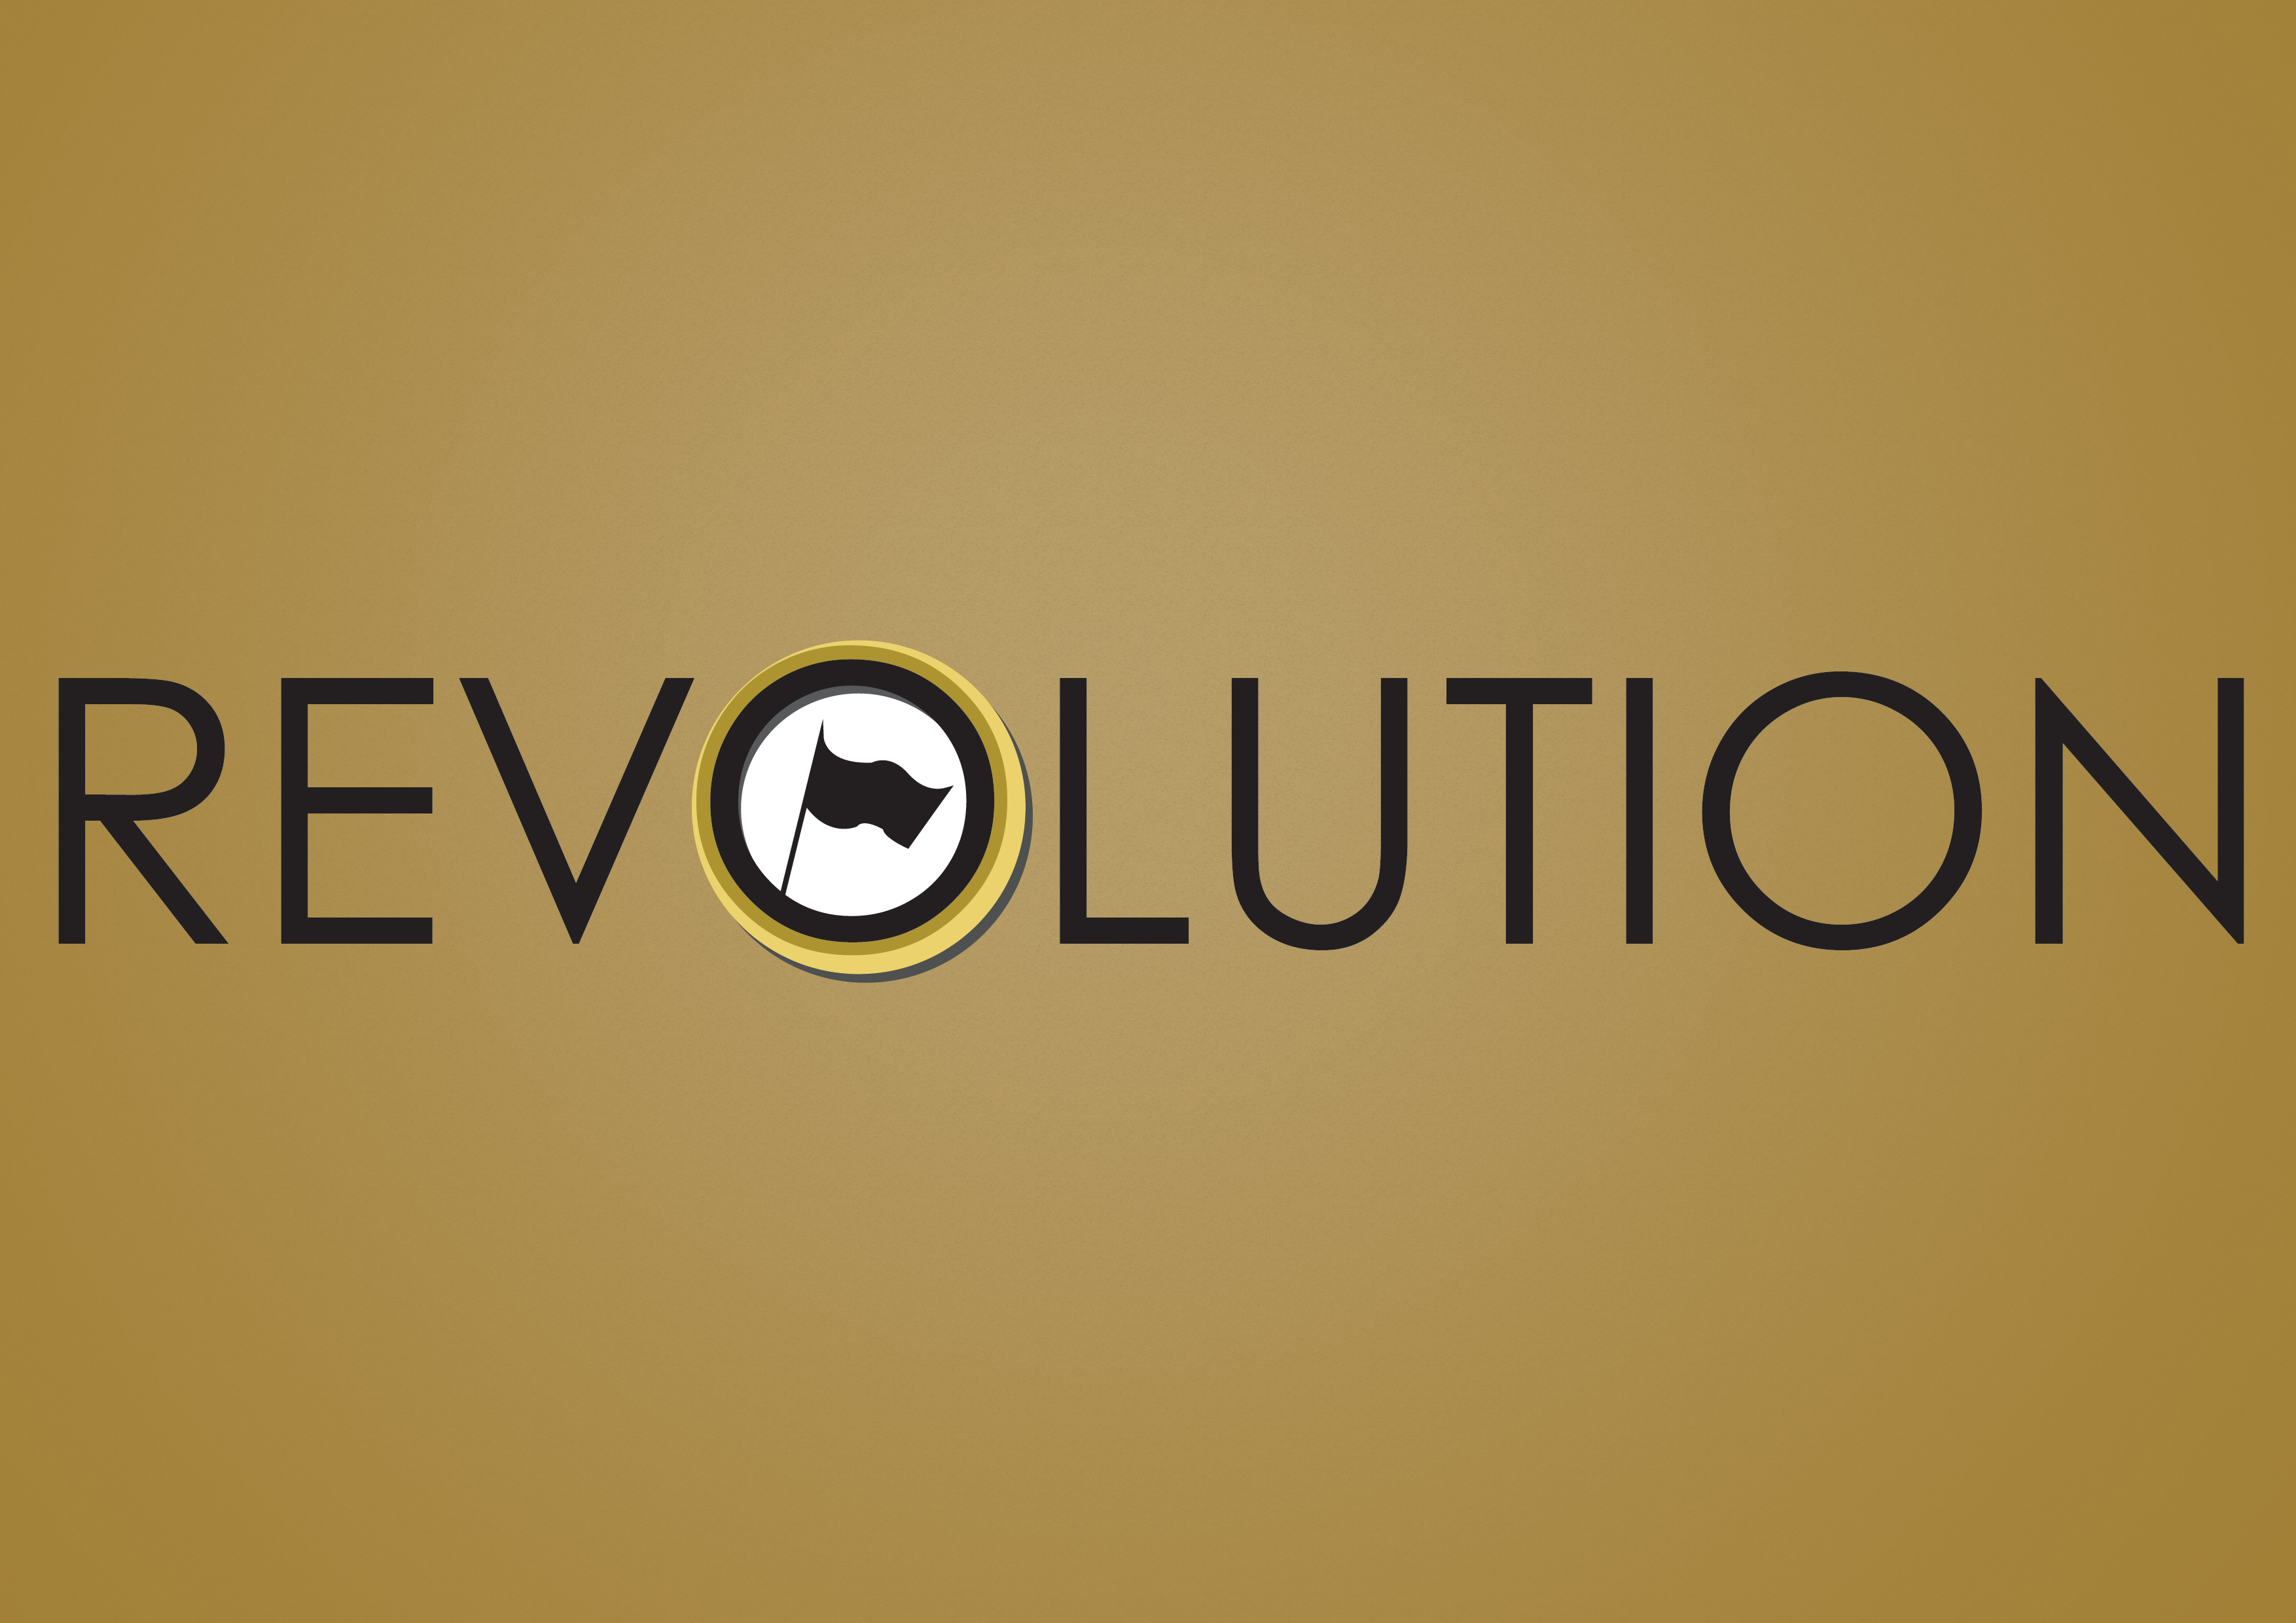 Word and Image Expression - Revolution